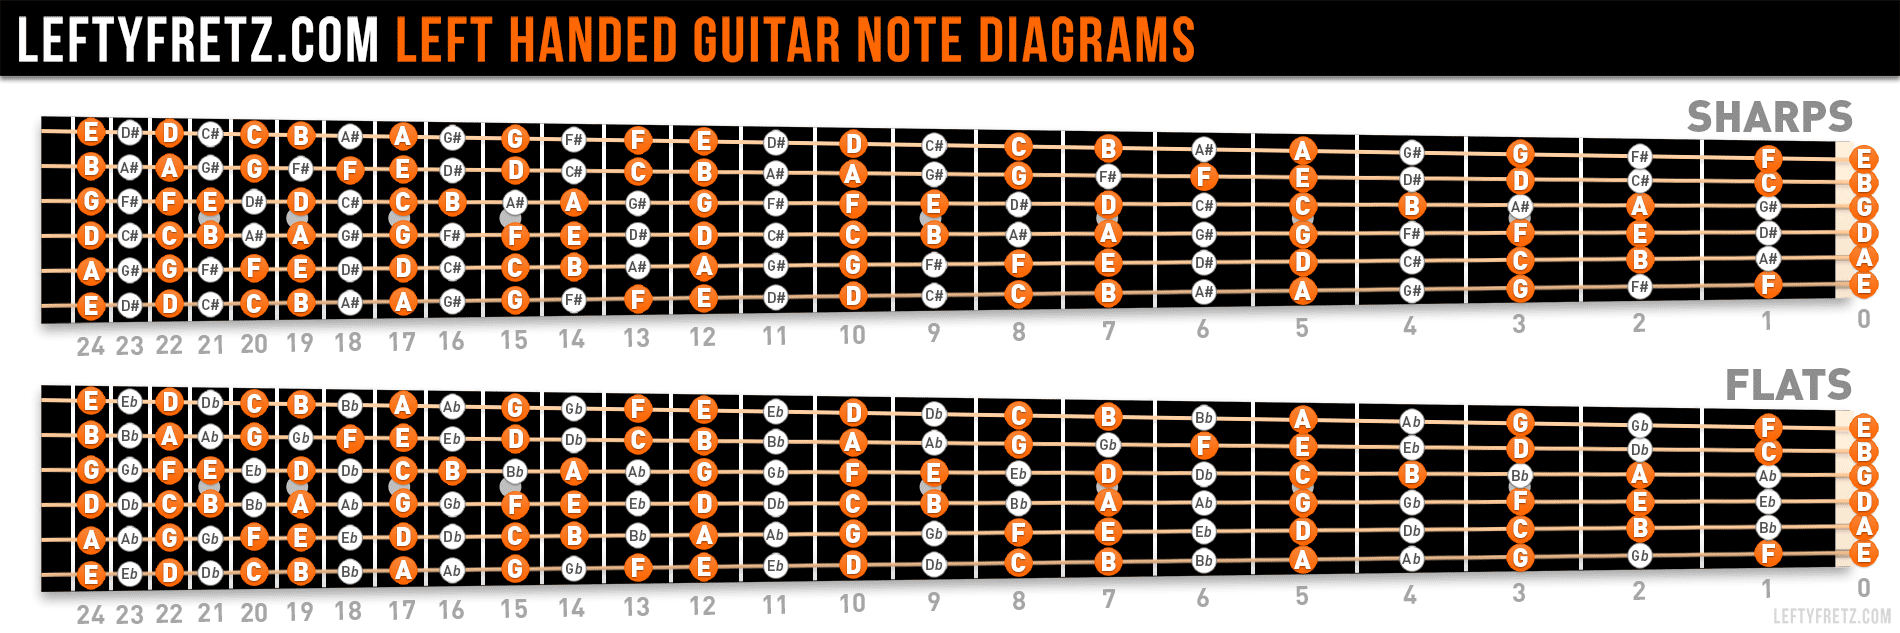 Playing In The Fall Wallpaper Left Handed Guitar Fretboard Diagram Learn The Notes